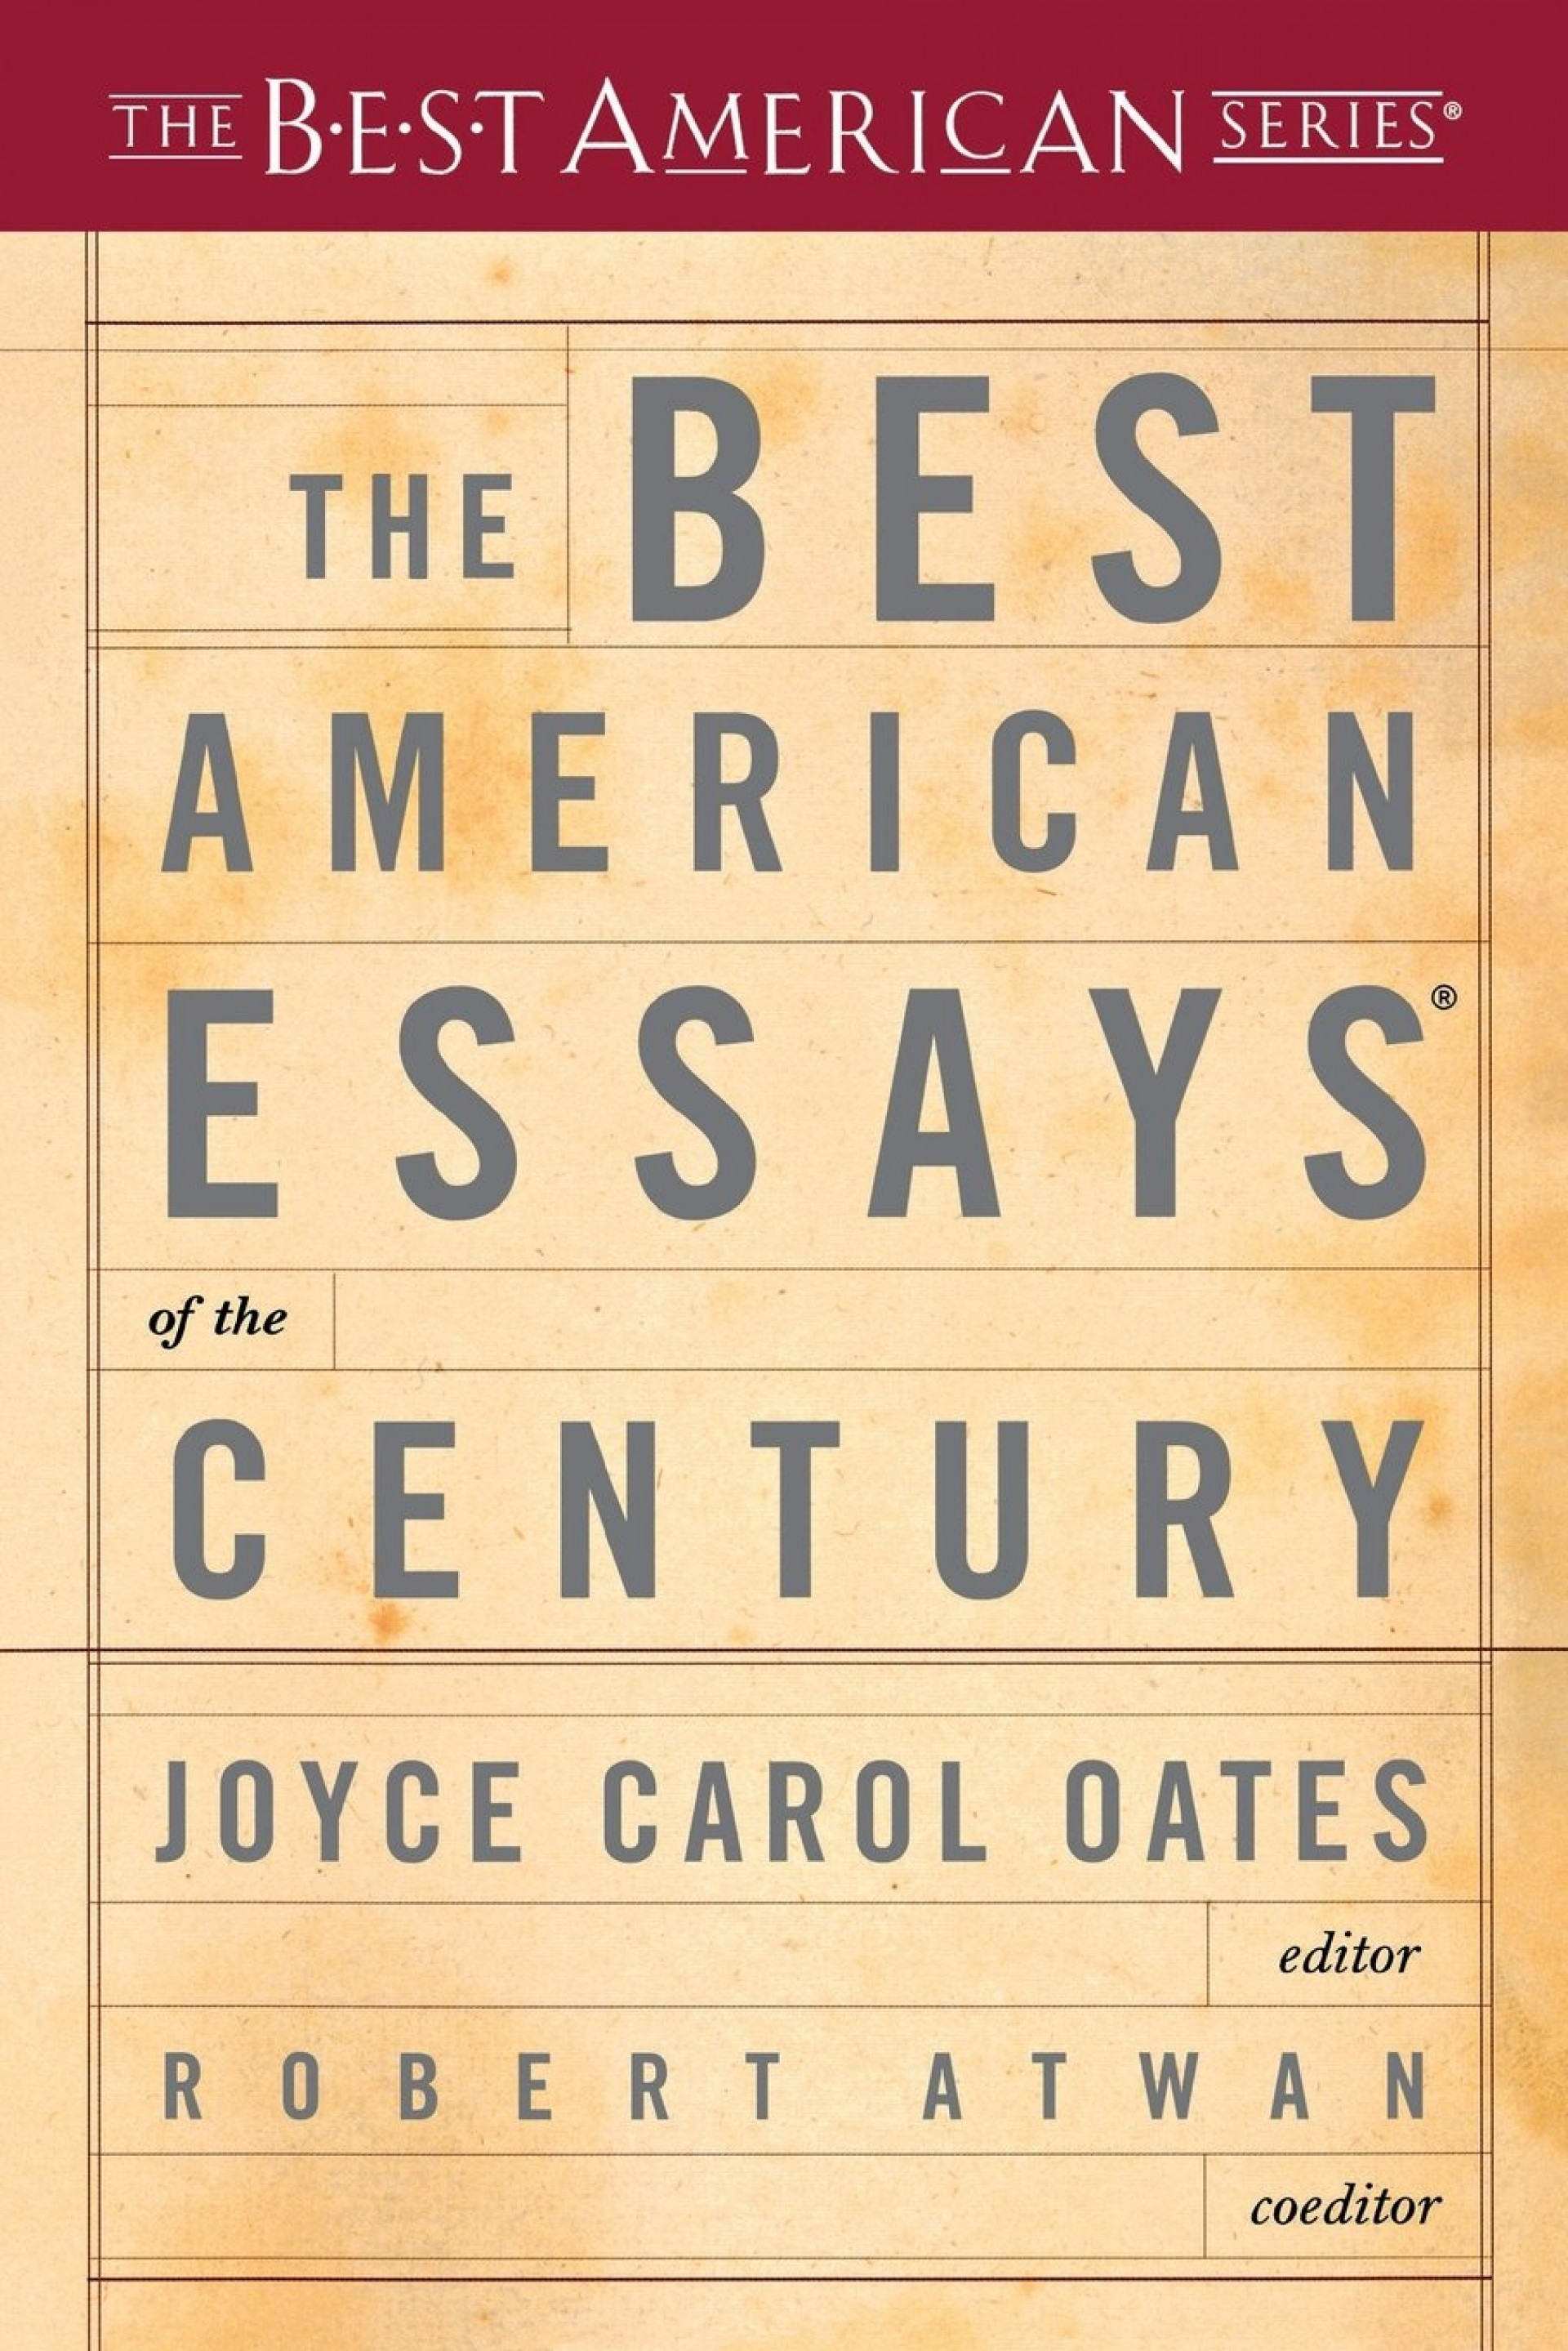 002 The Best American Essays Essay Example Wonderful 2013 Pdf Download Of Century Sparknotes 2017 1920